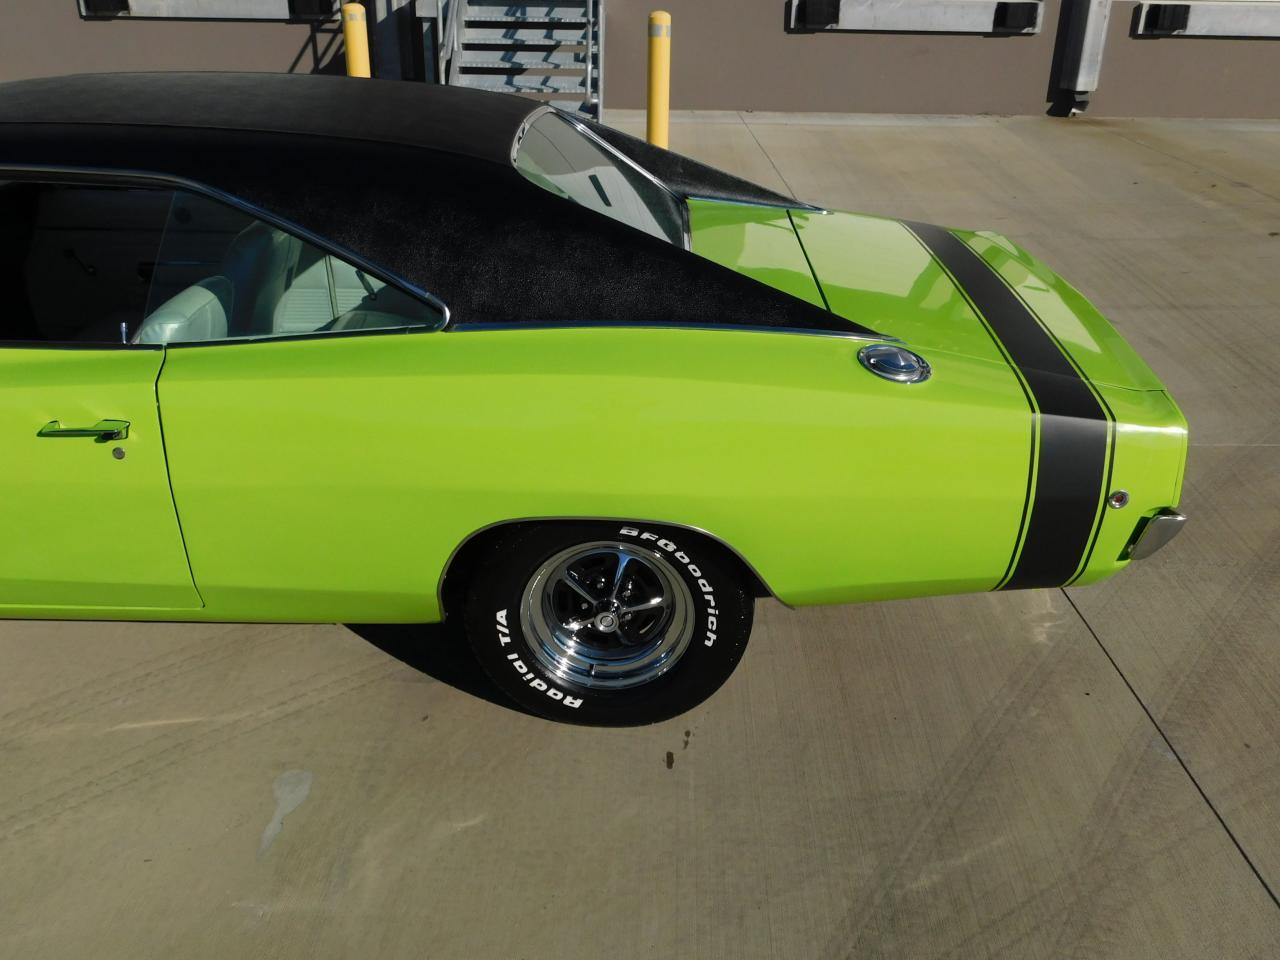 Large Picture of Classic 1968 Charger located in Alpharetta Georgia - $39,995.00 Offered by Gateway Classic Cars - Atlanta - MFU6